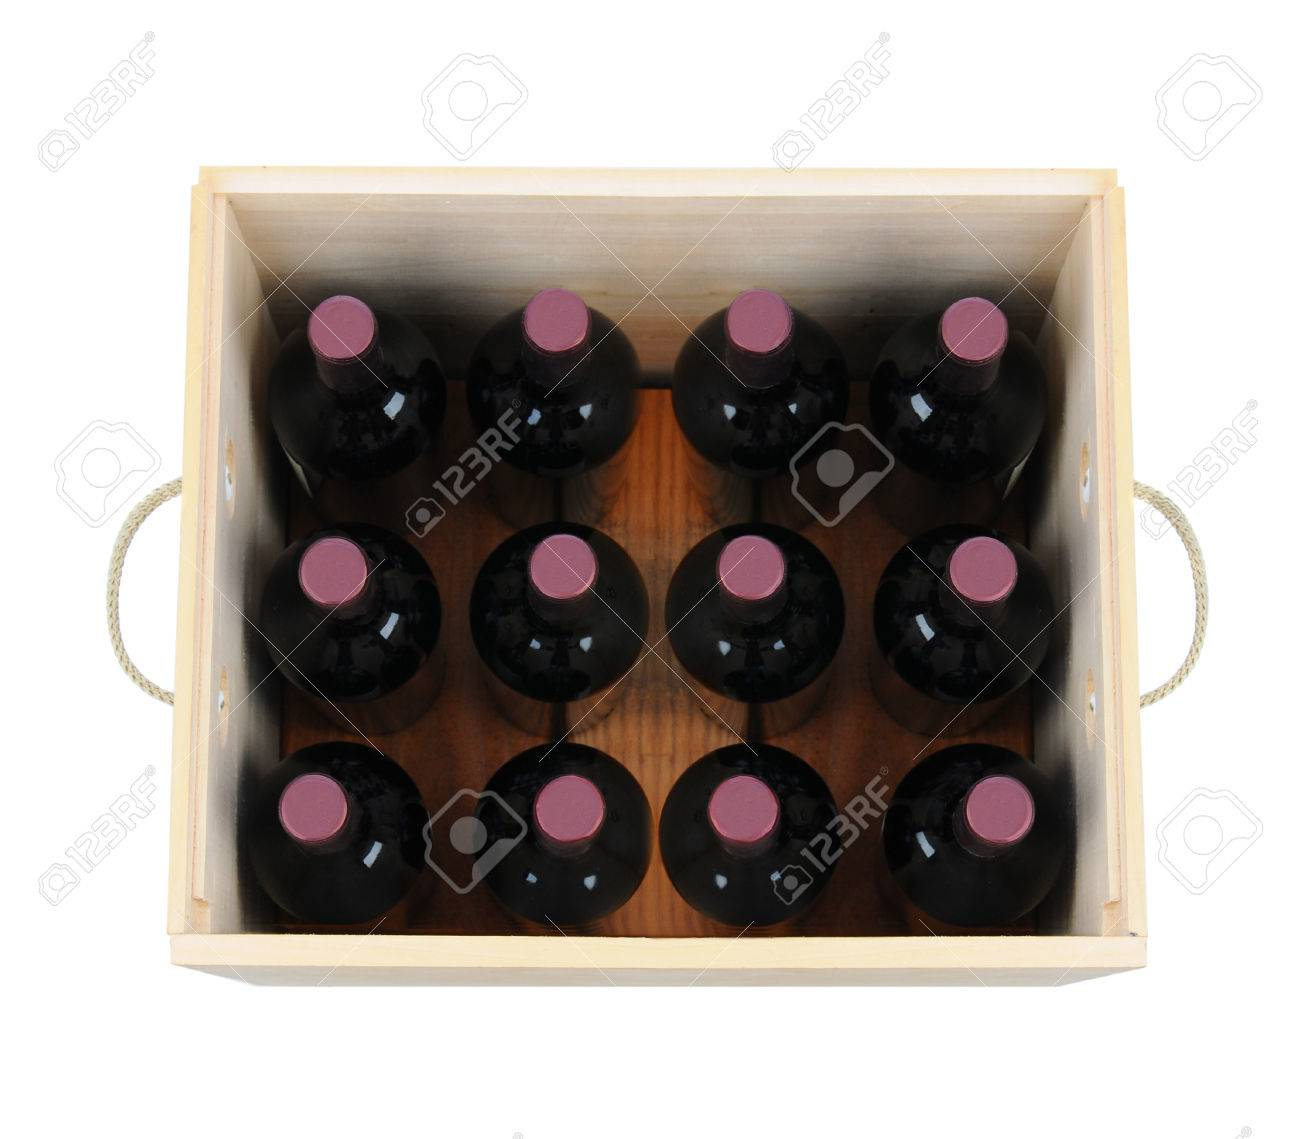 A Wooden Wine Case With Twelve Bottles High Angle Shot Looking